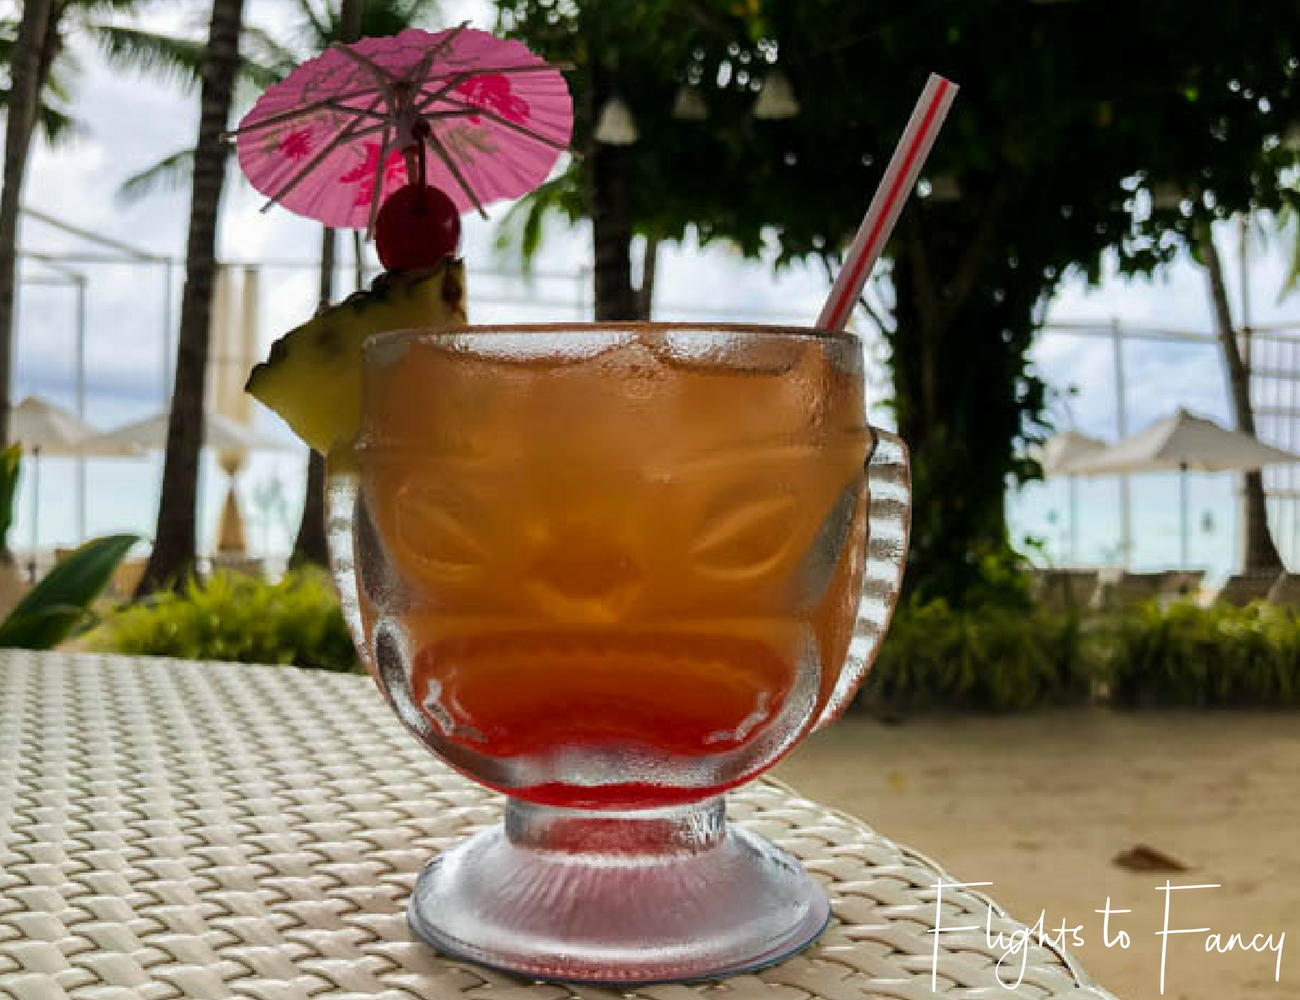 Flights To Fancy at Cha Cha's Boracay - Mai Tai on the beach